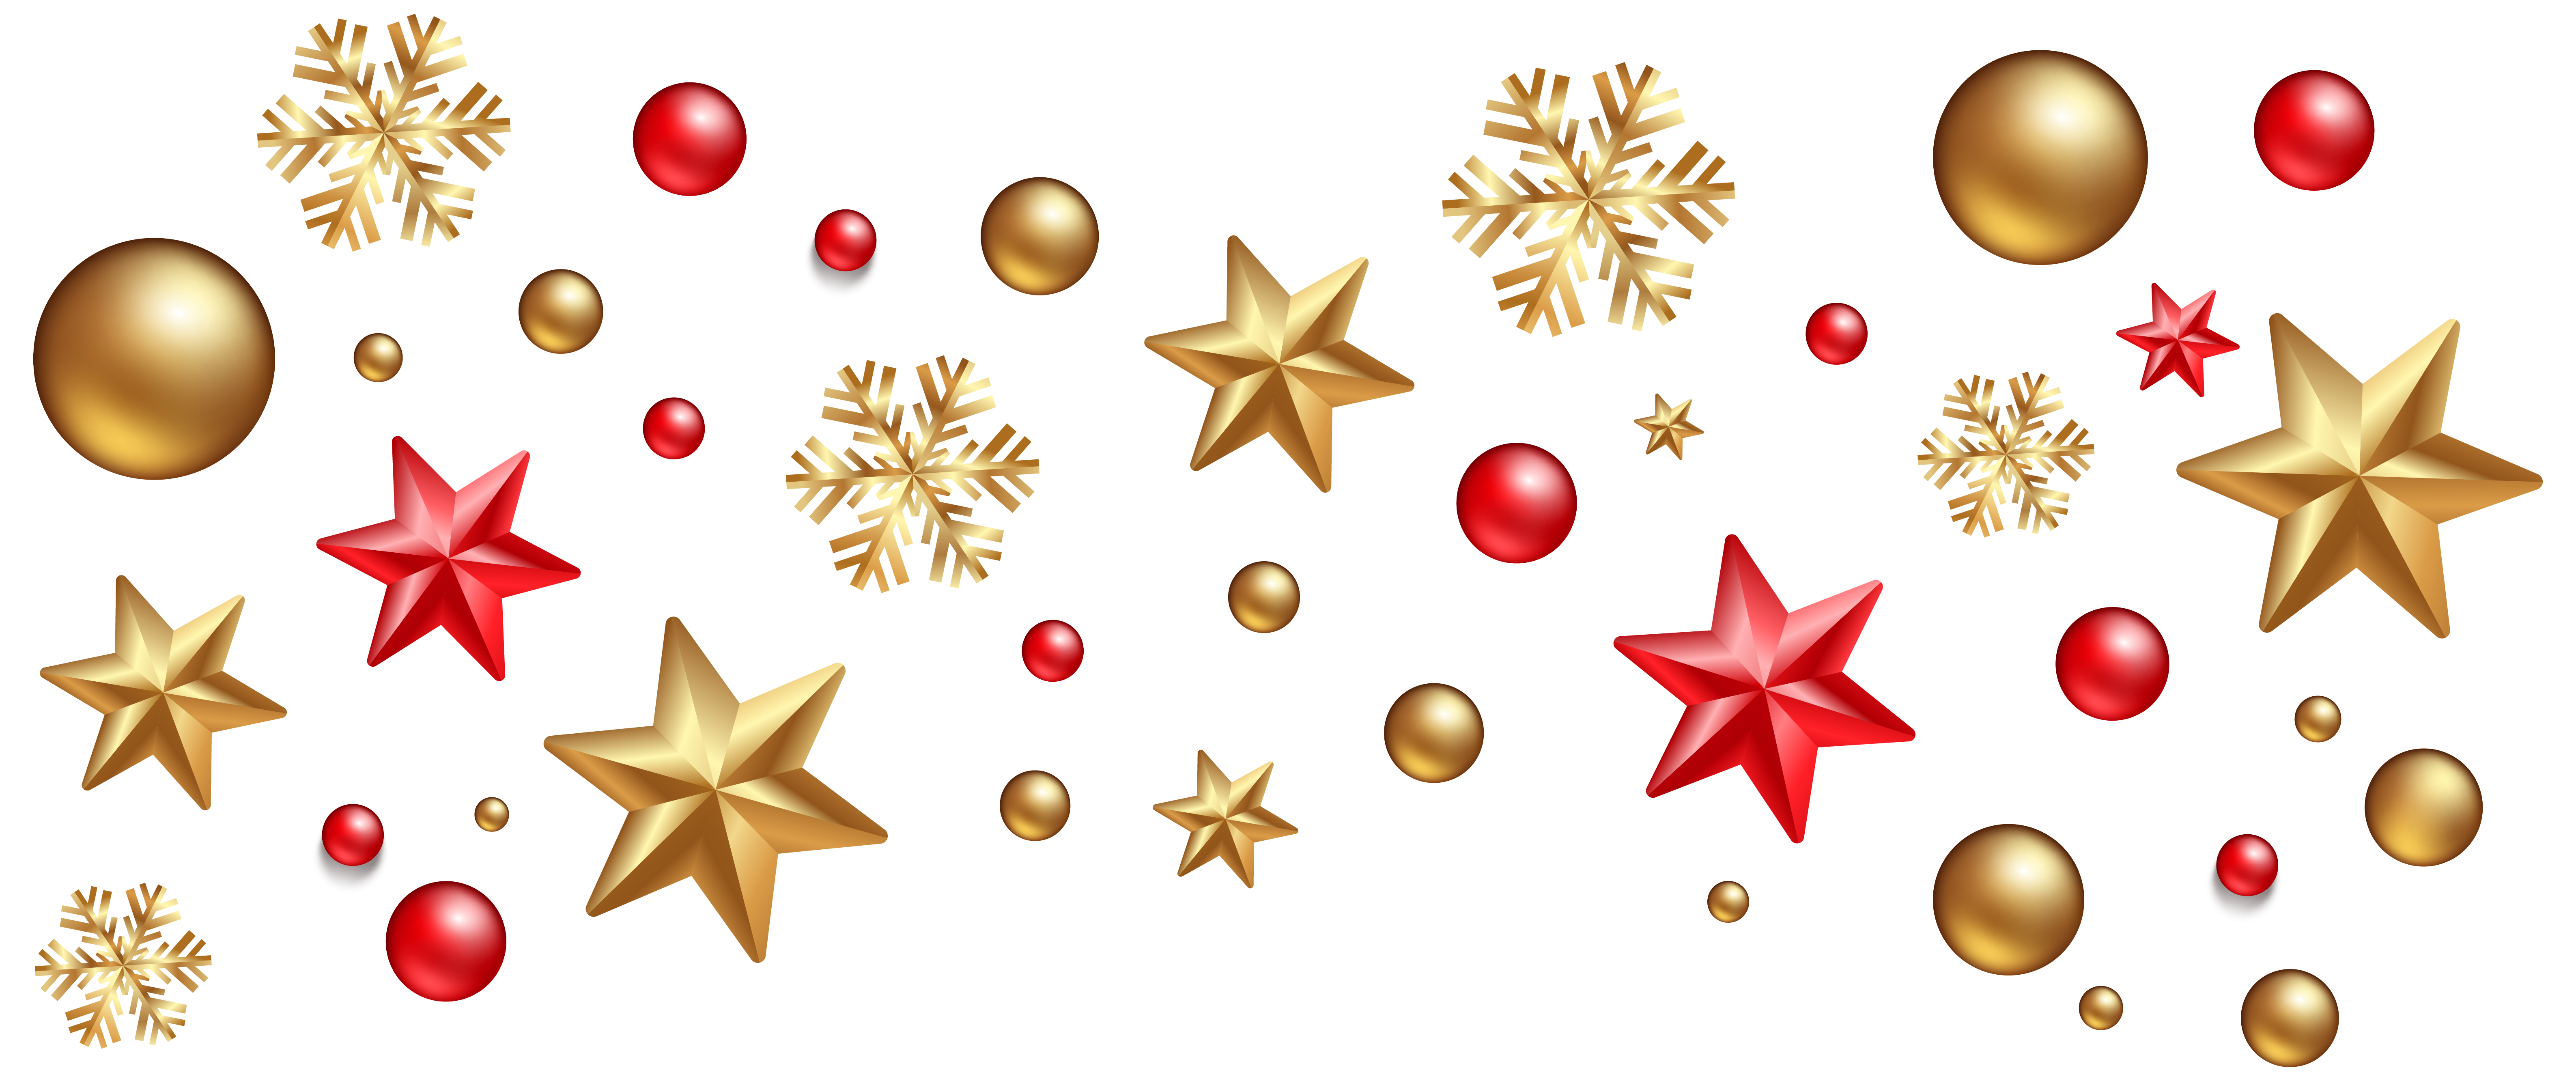 New year ornaments png. Christmas decoration ideas